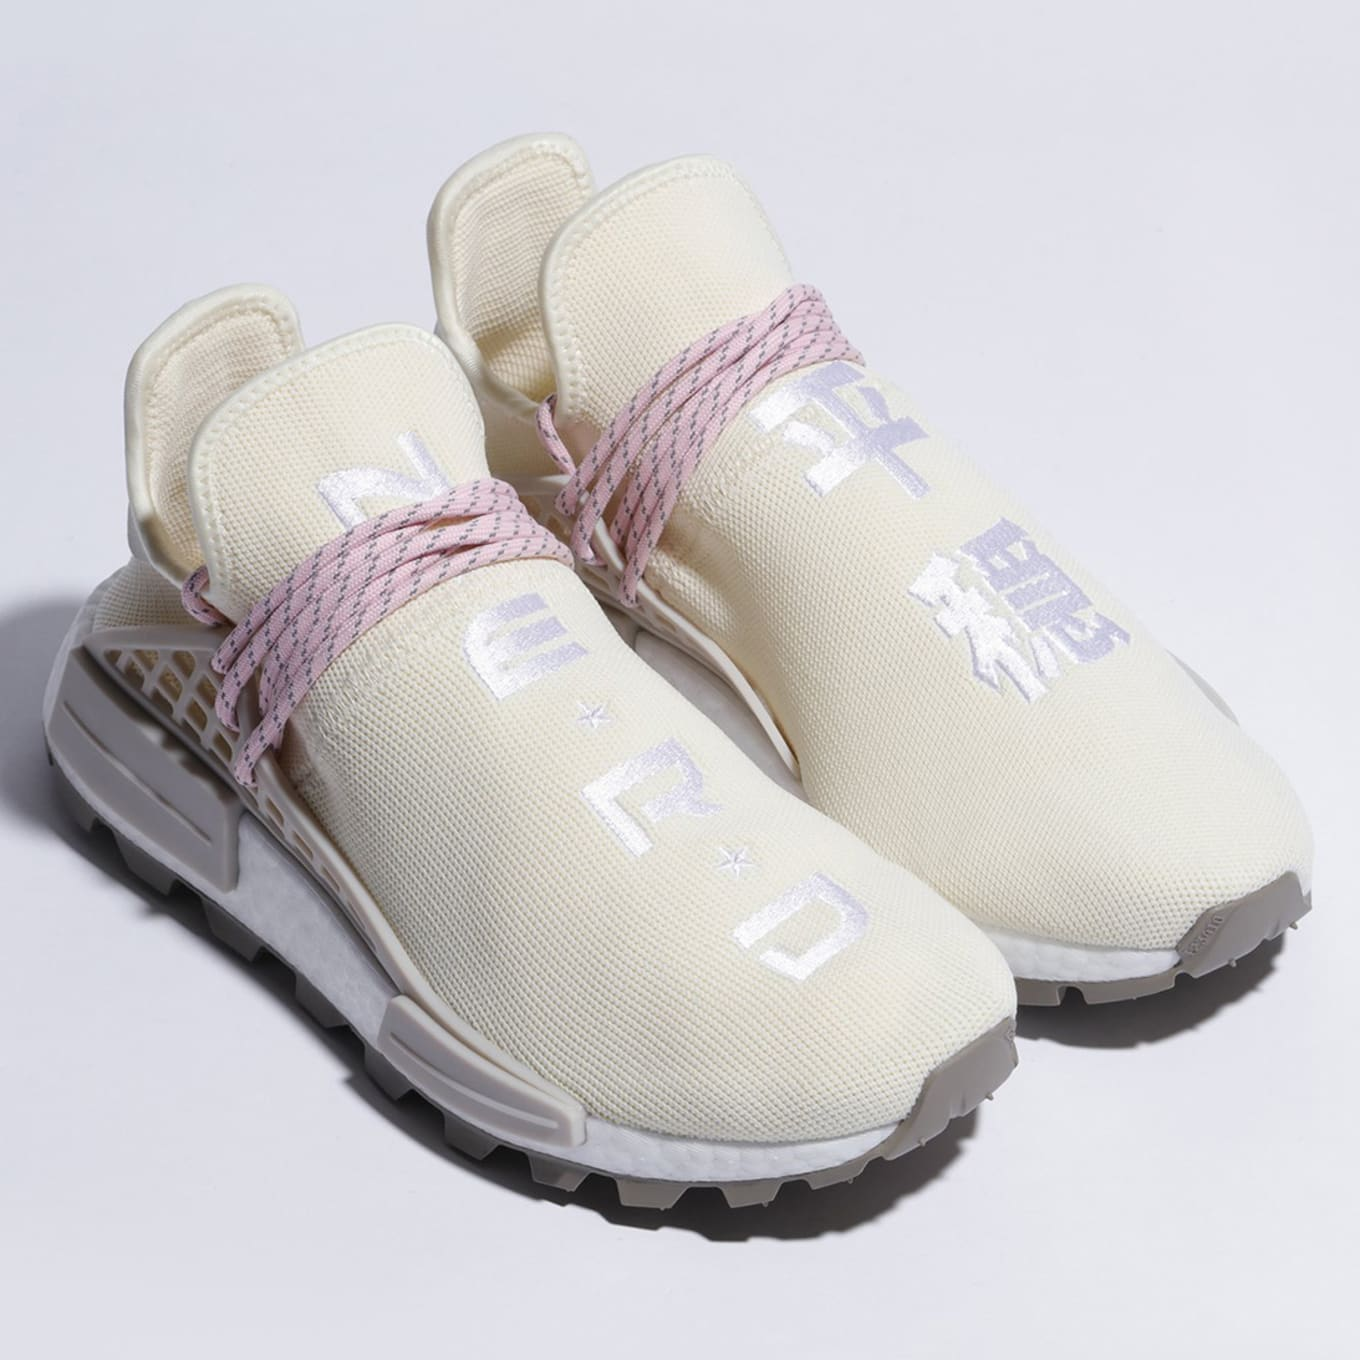 new styles 4f1a1 0bb7a Pharrell x Adidas NMD Hu 'N.E.R.D.' in 'Cream/Pink' | Sole ...